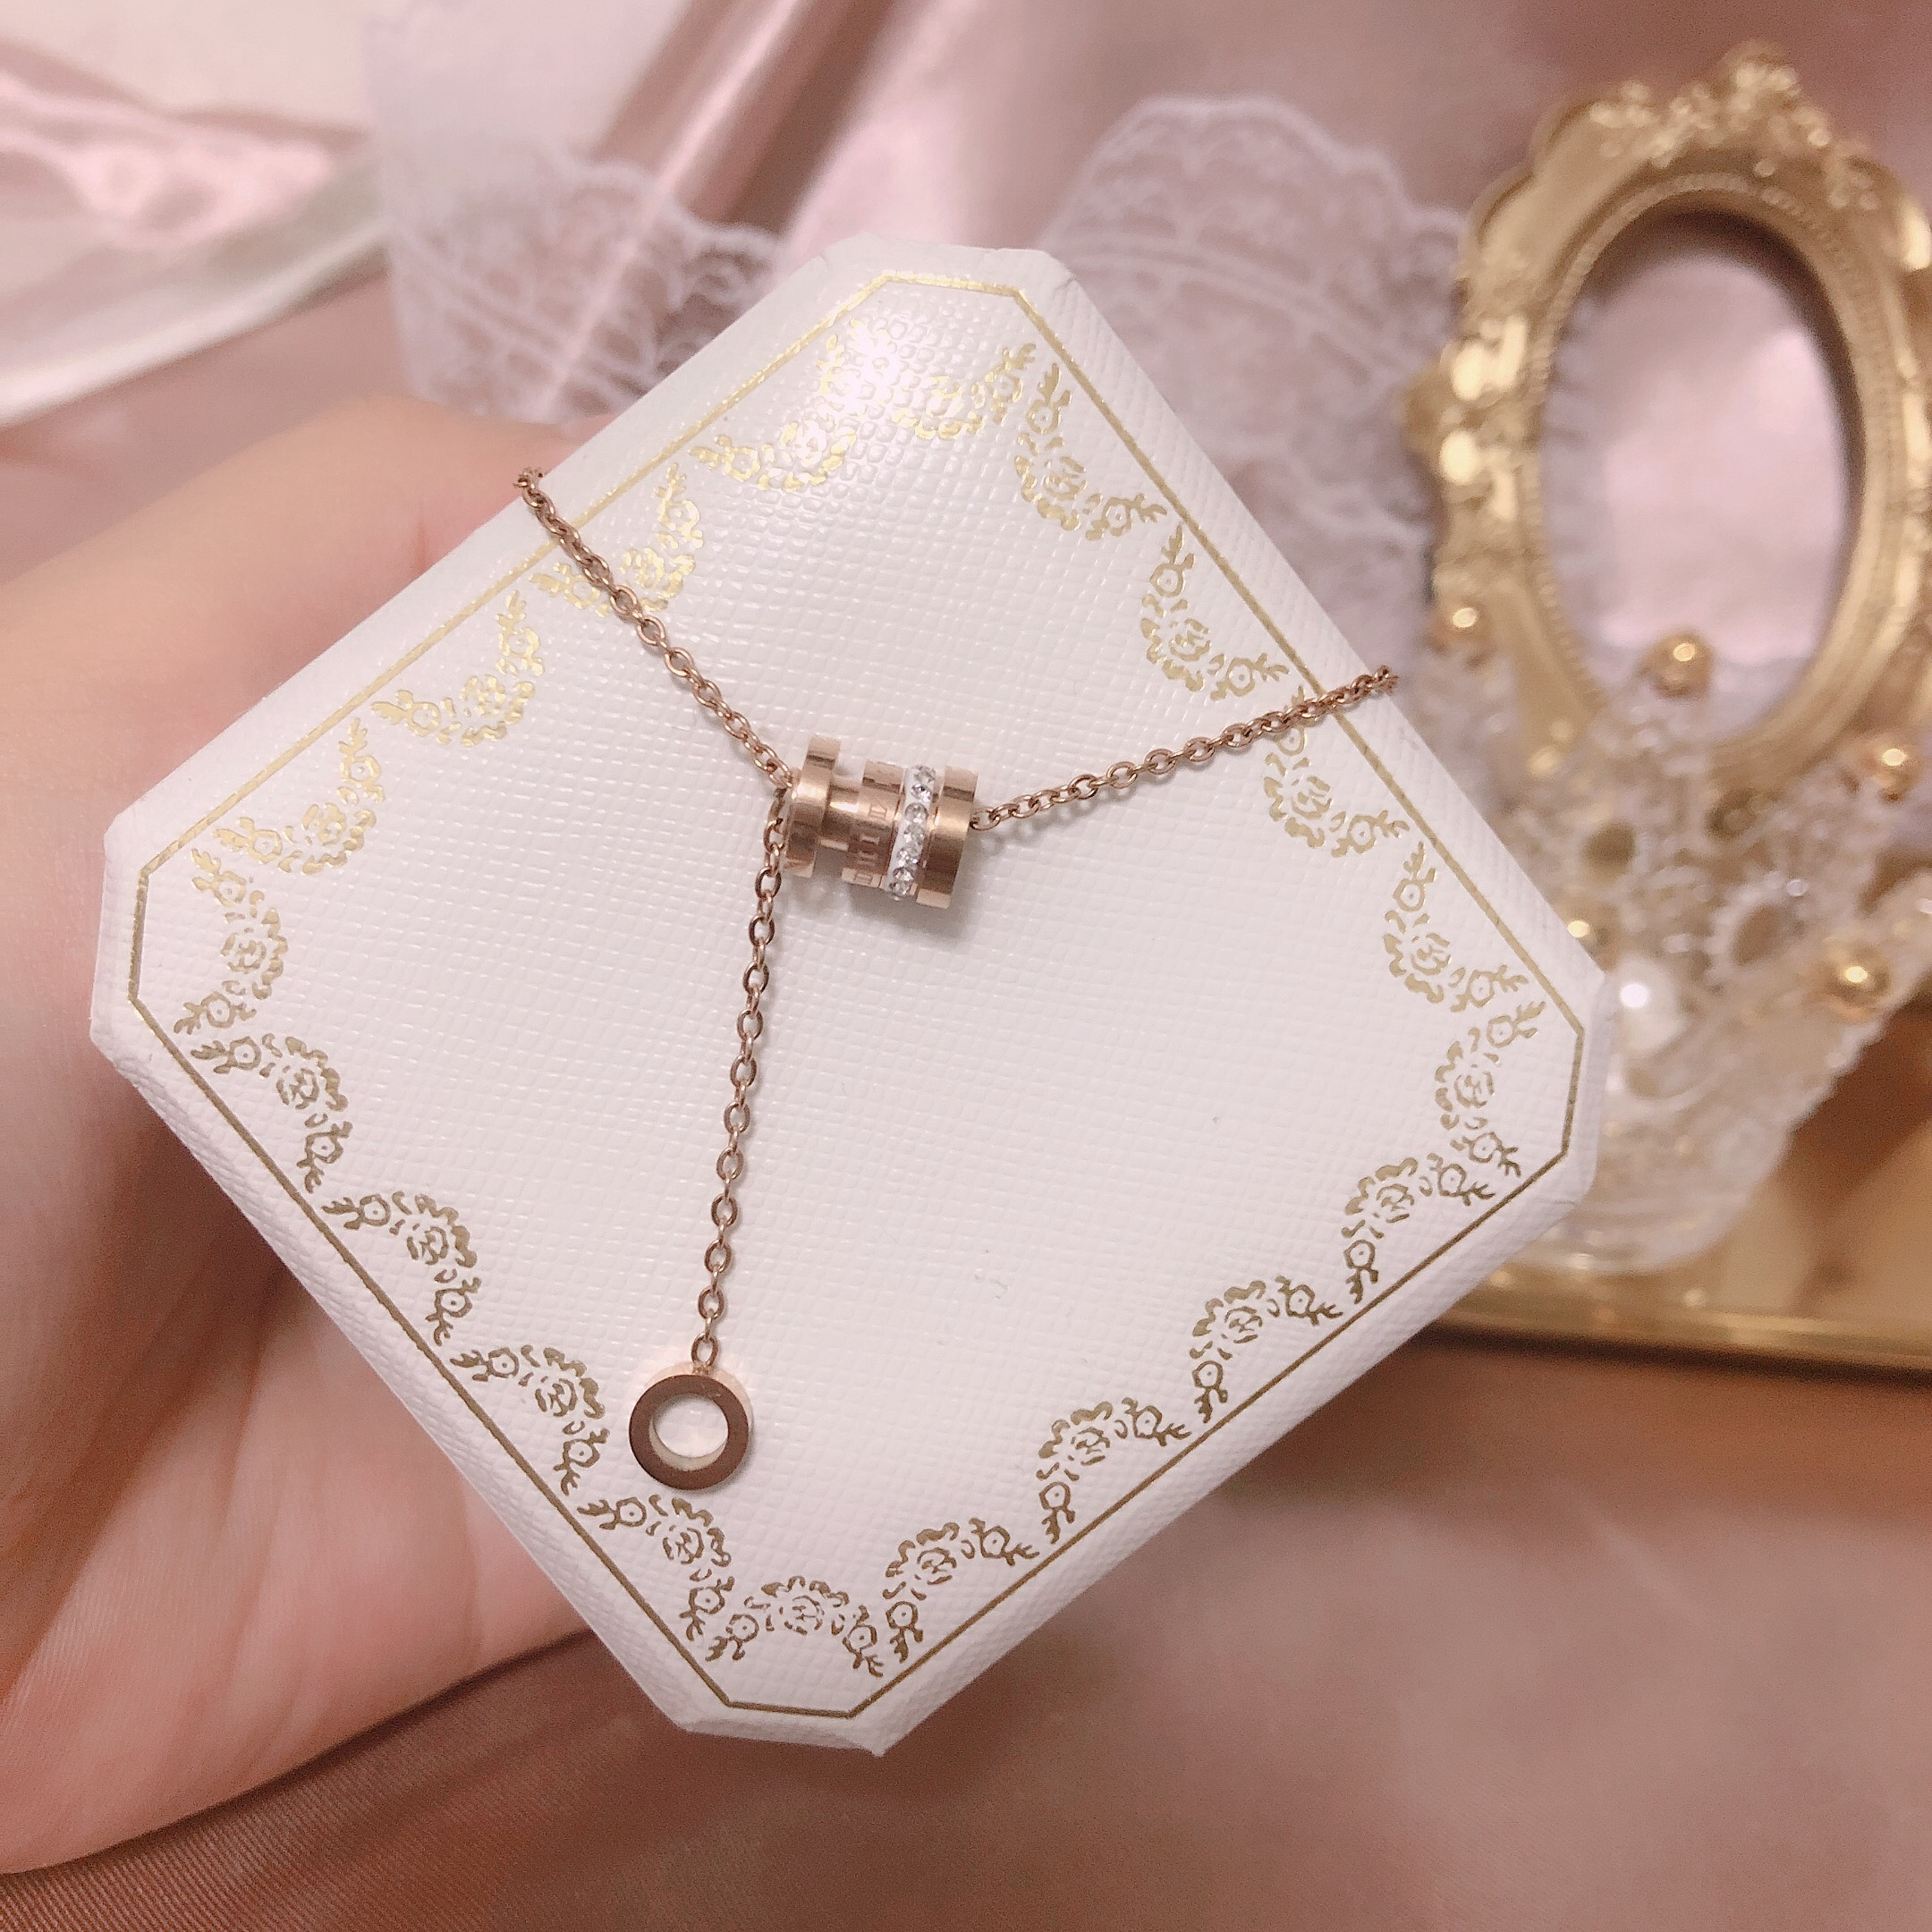 Roman numeral Rose Gold Titanium Steel Necklace female clavicle chain inlaid with Gemstone alloy temperament circle colorless Pendant